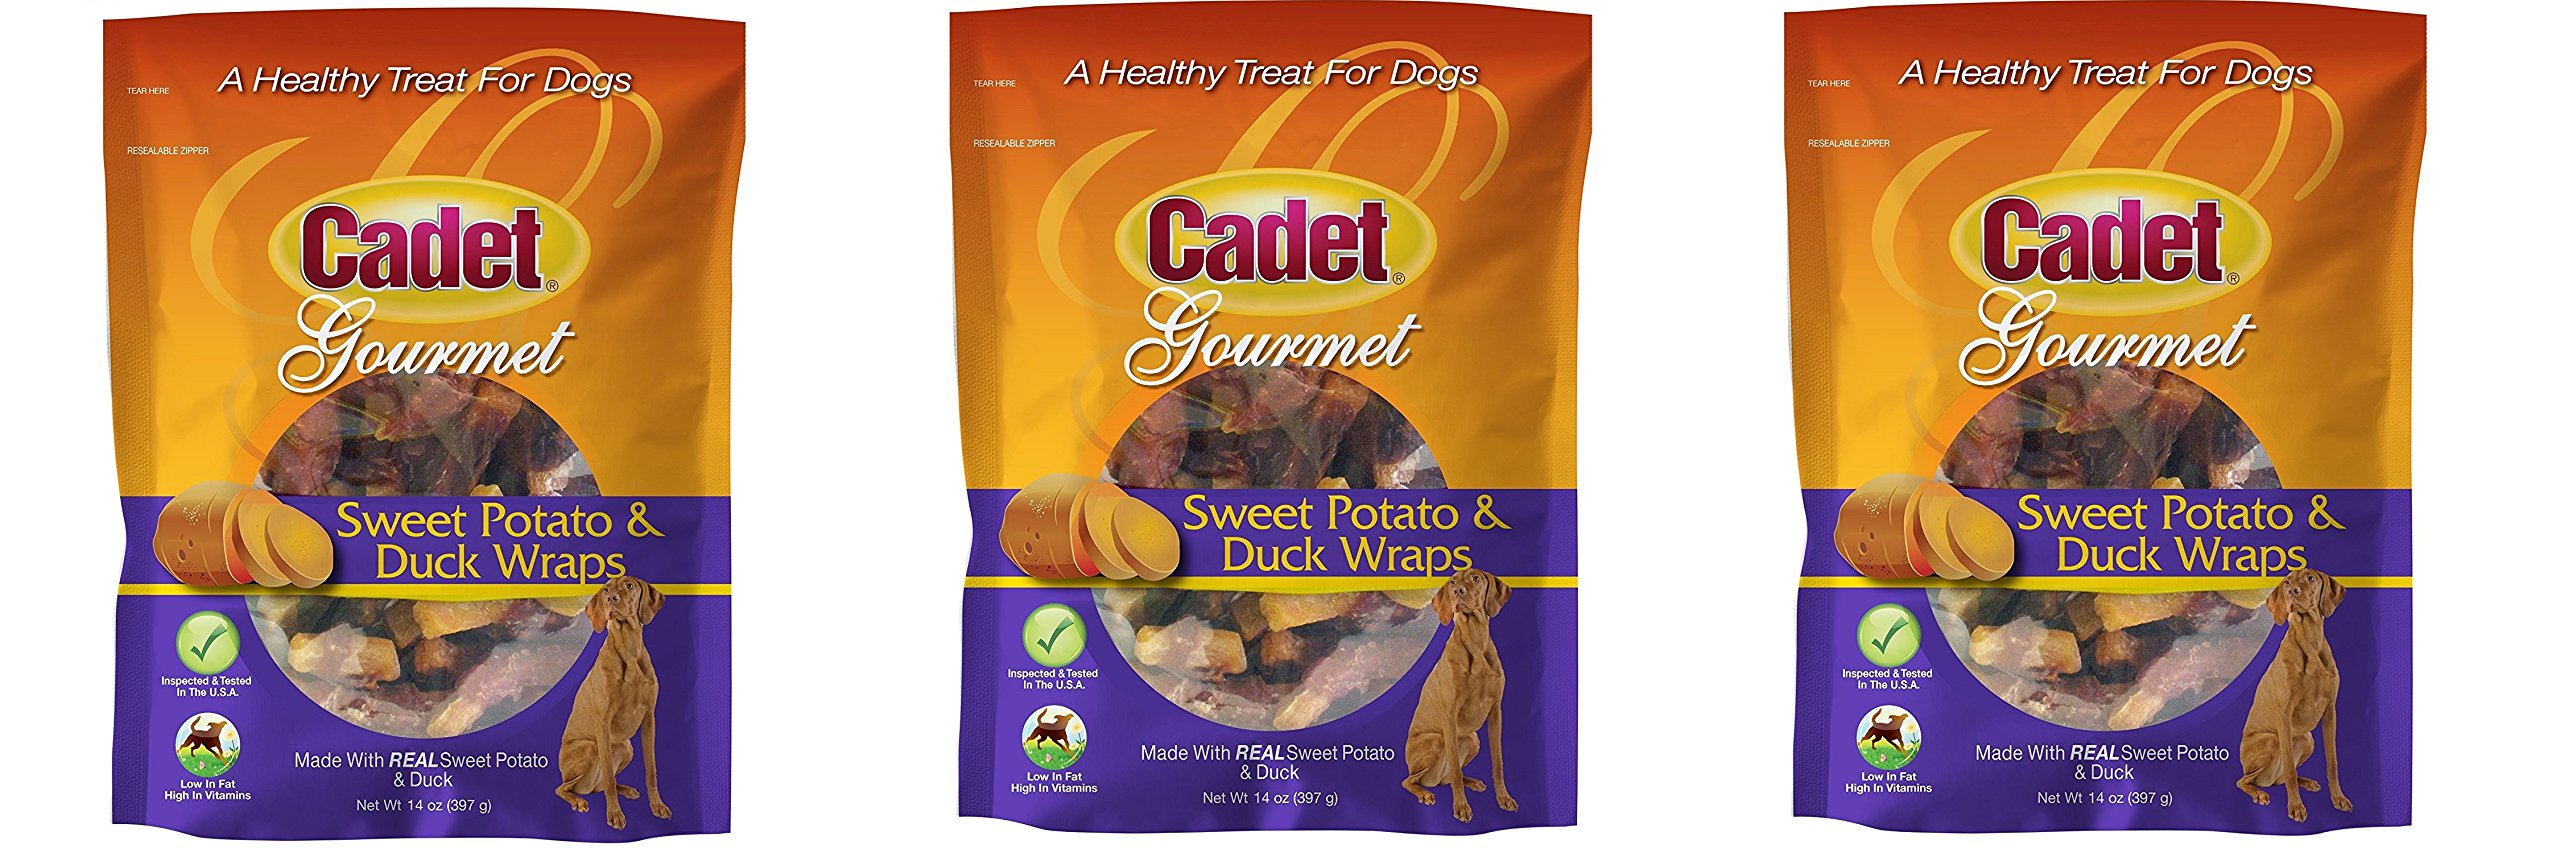 Cadet 3 Pack of Gourmet Sweet Potato and Duck Wraps Dog Treats, 14 Ounces Per Pack